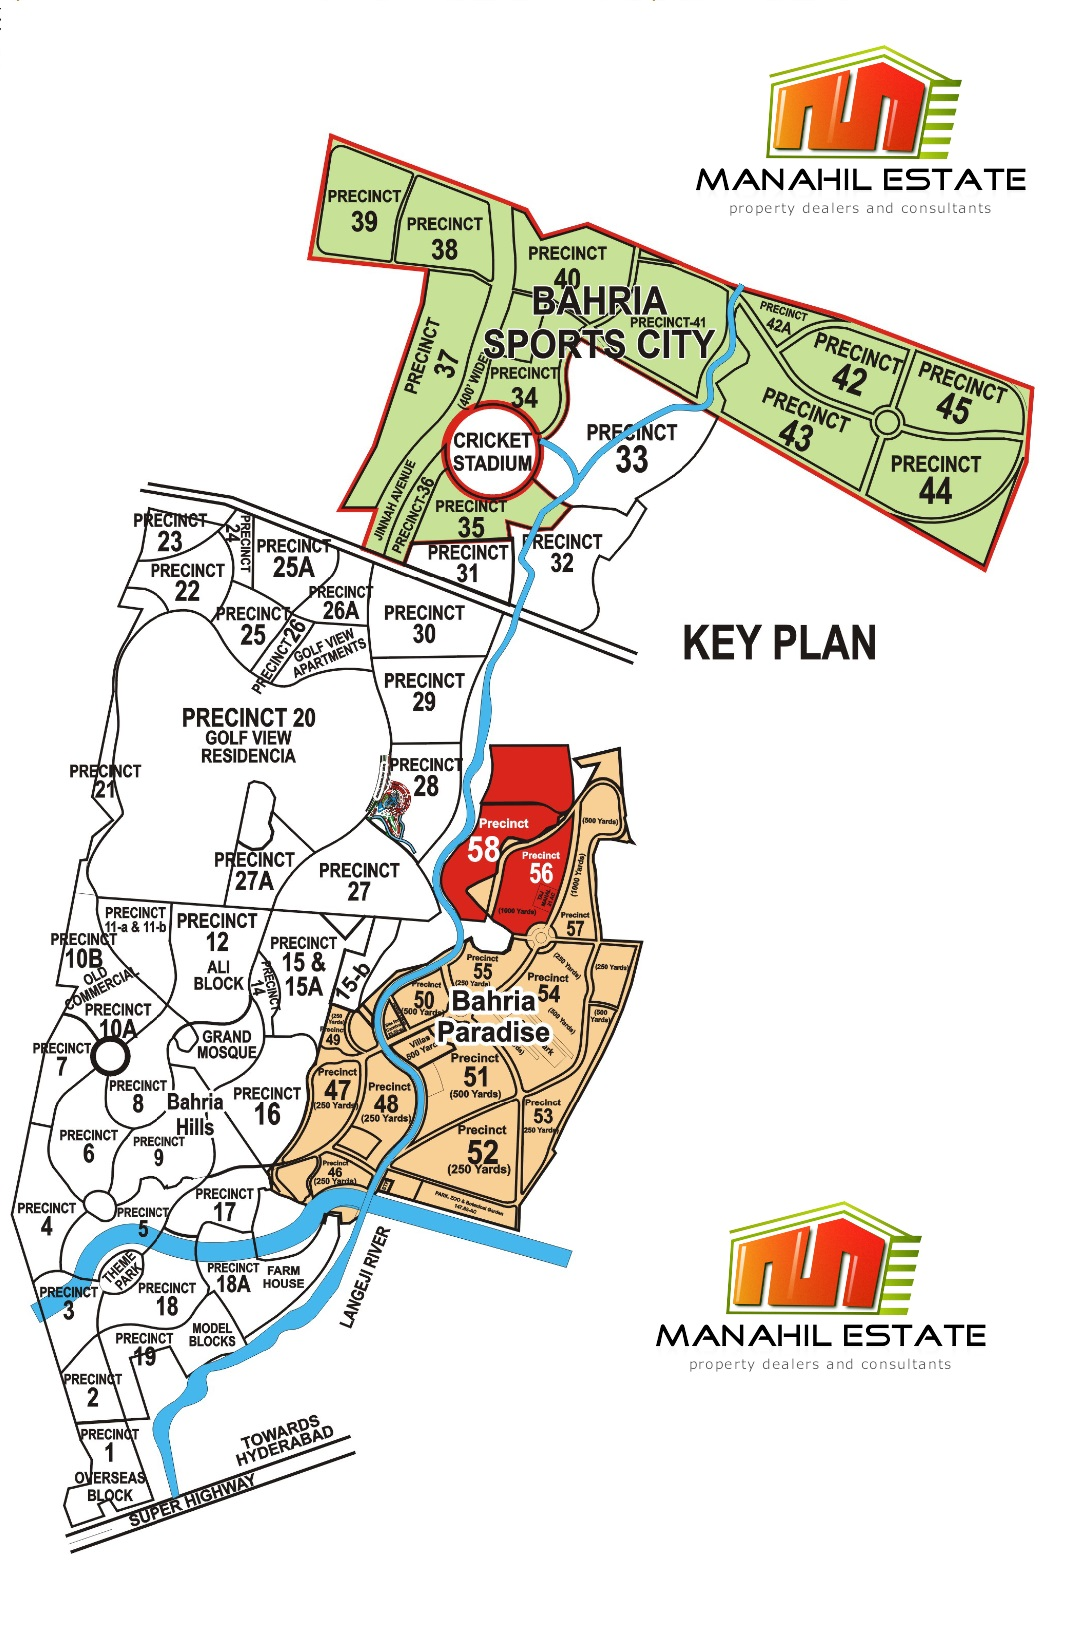 Bahria Paradise Karachi Precinct 58 Location and Map - Manahil Estate